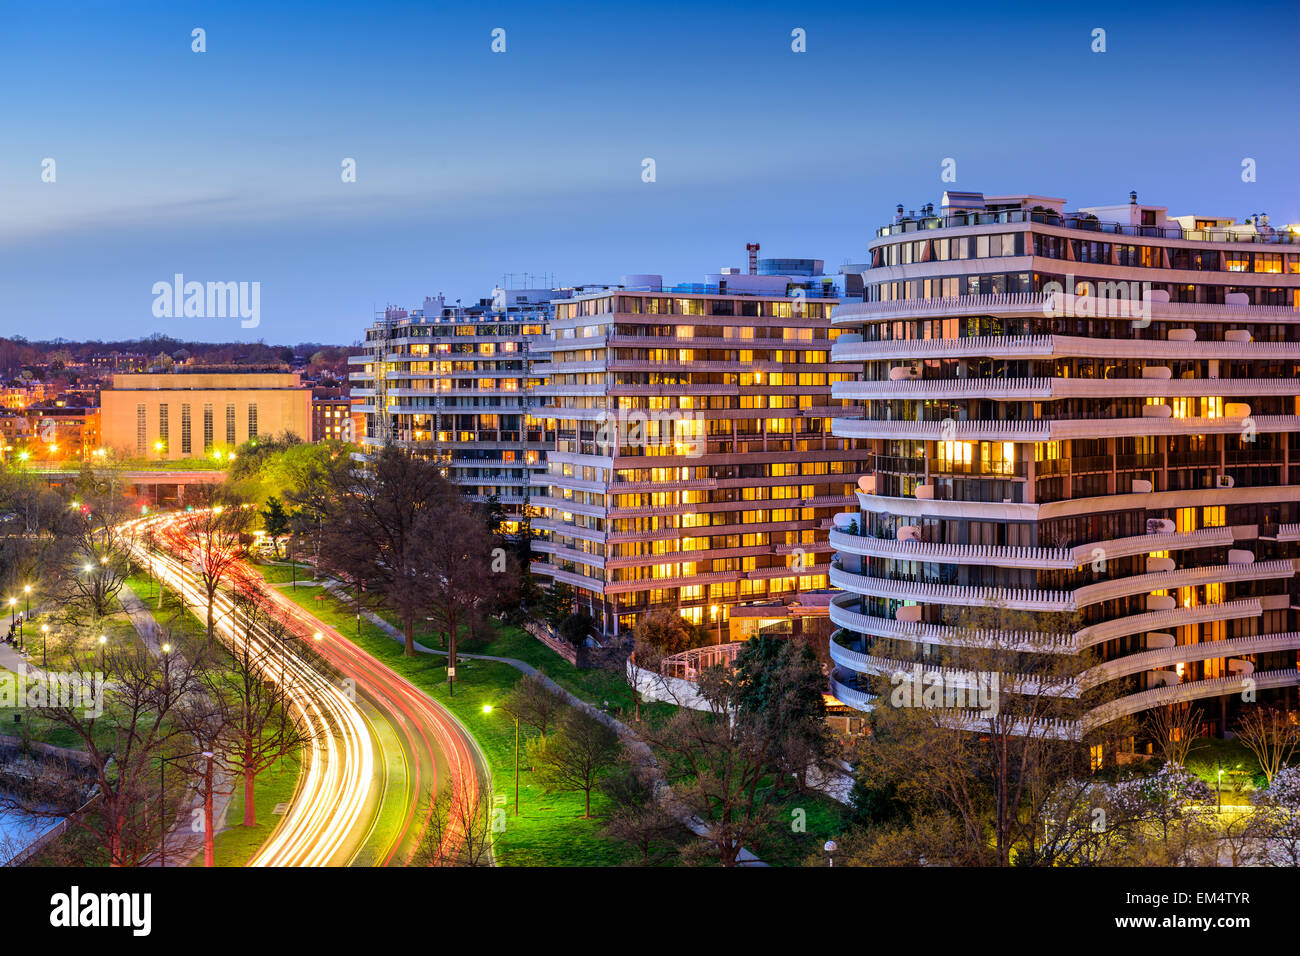 Washington, D.C. cityscape in the Foggy Bottom District. - Stock Image